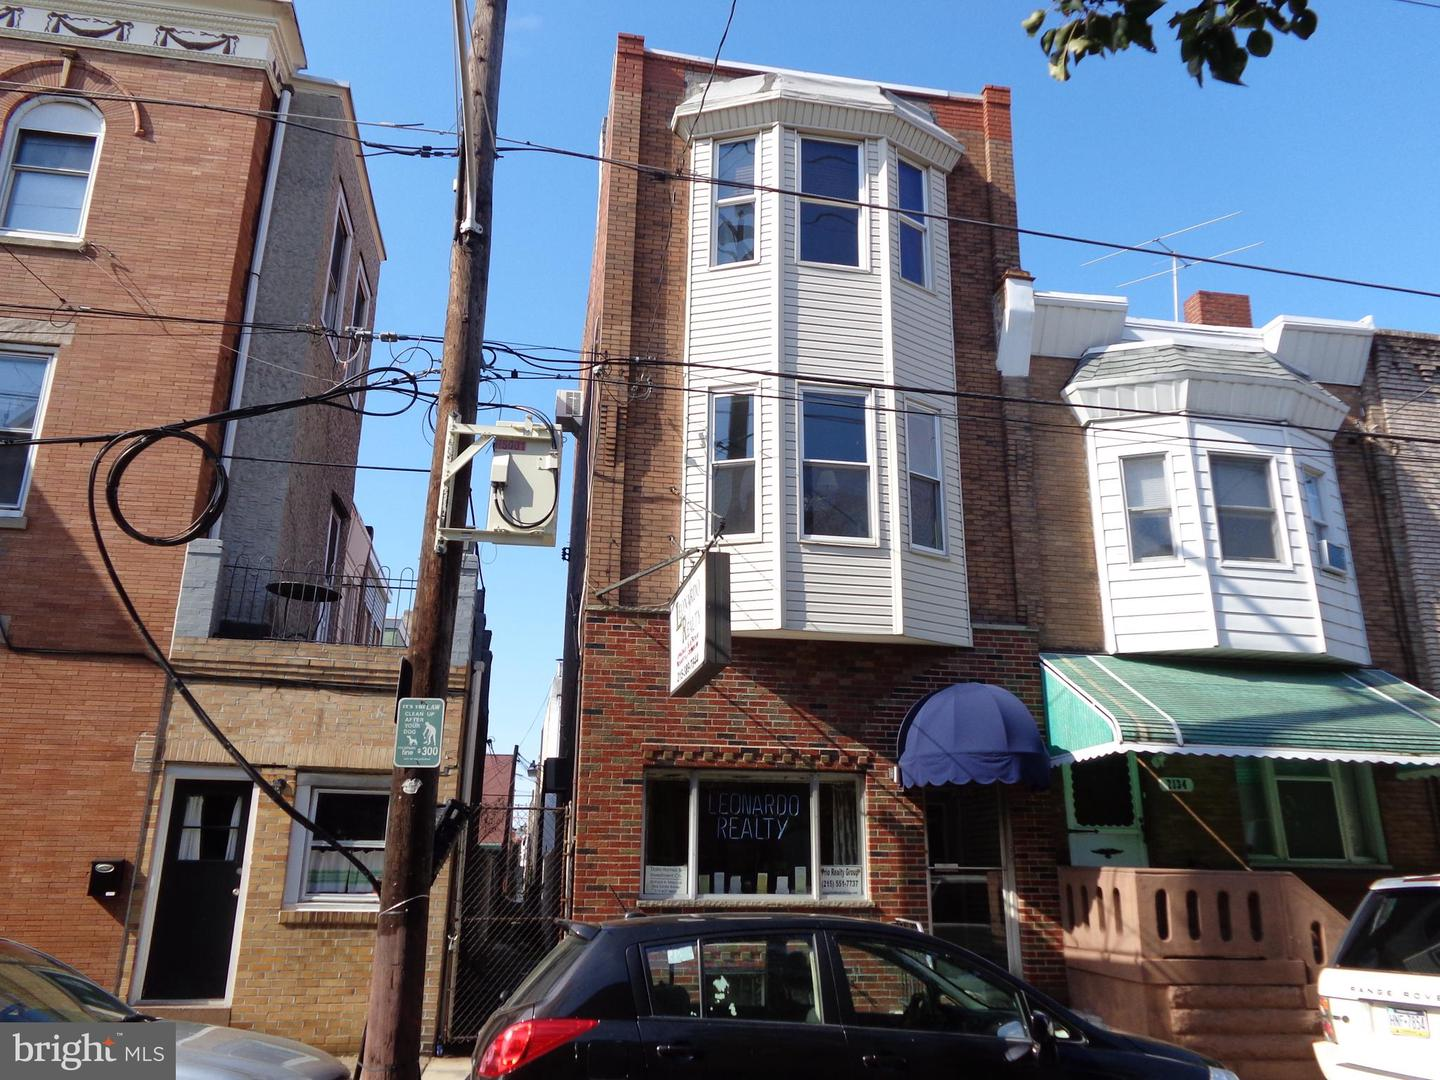 2136 S 16TH Street Philadelphia, PA 19145